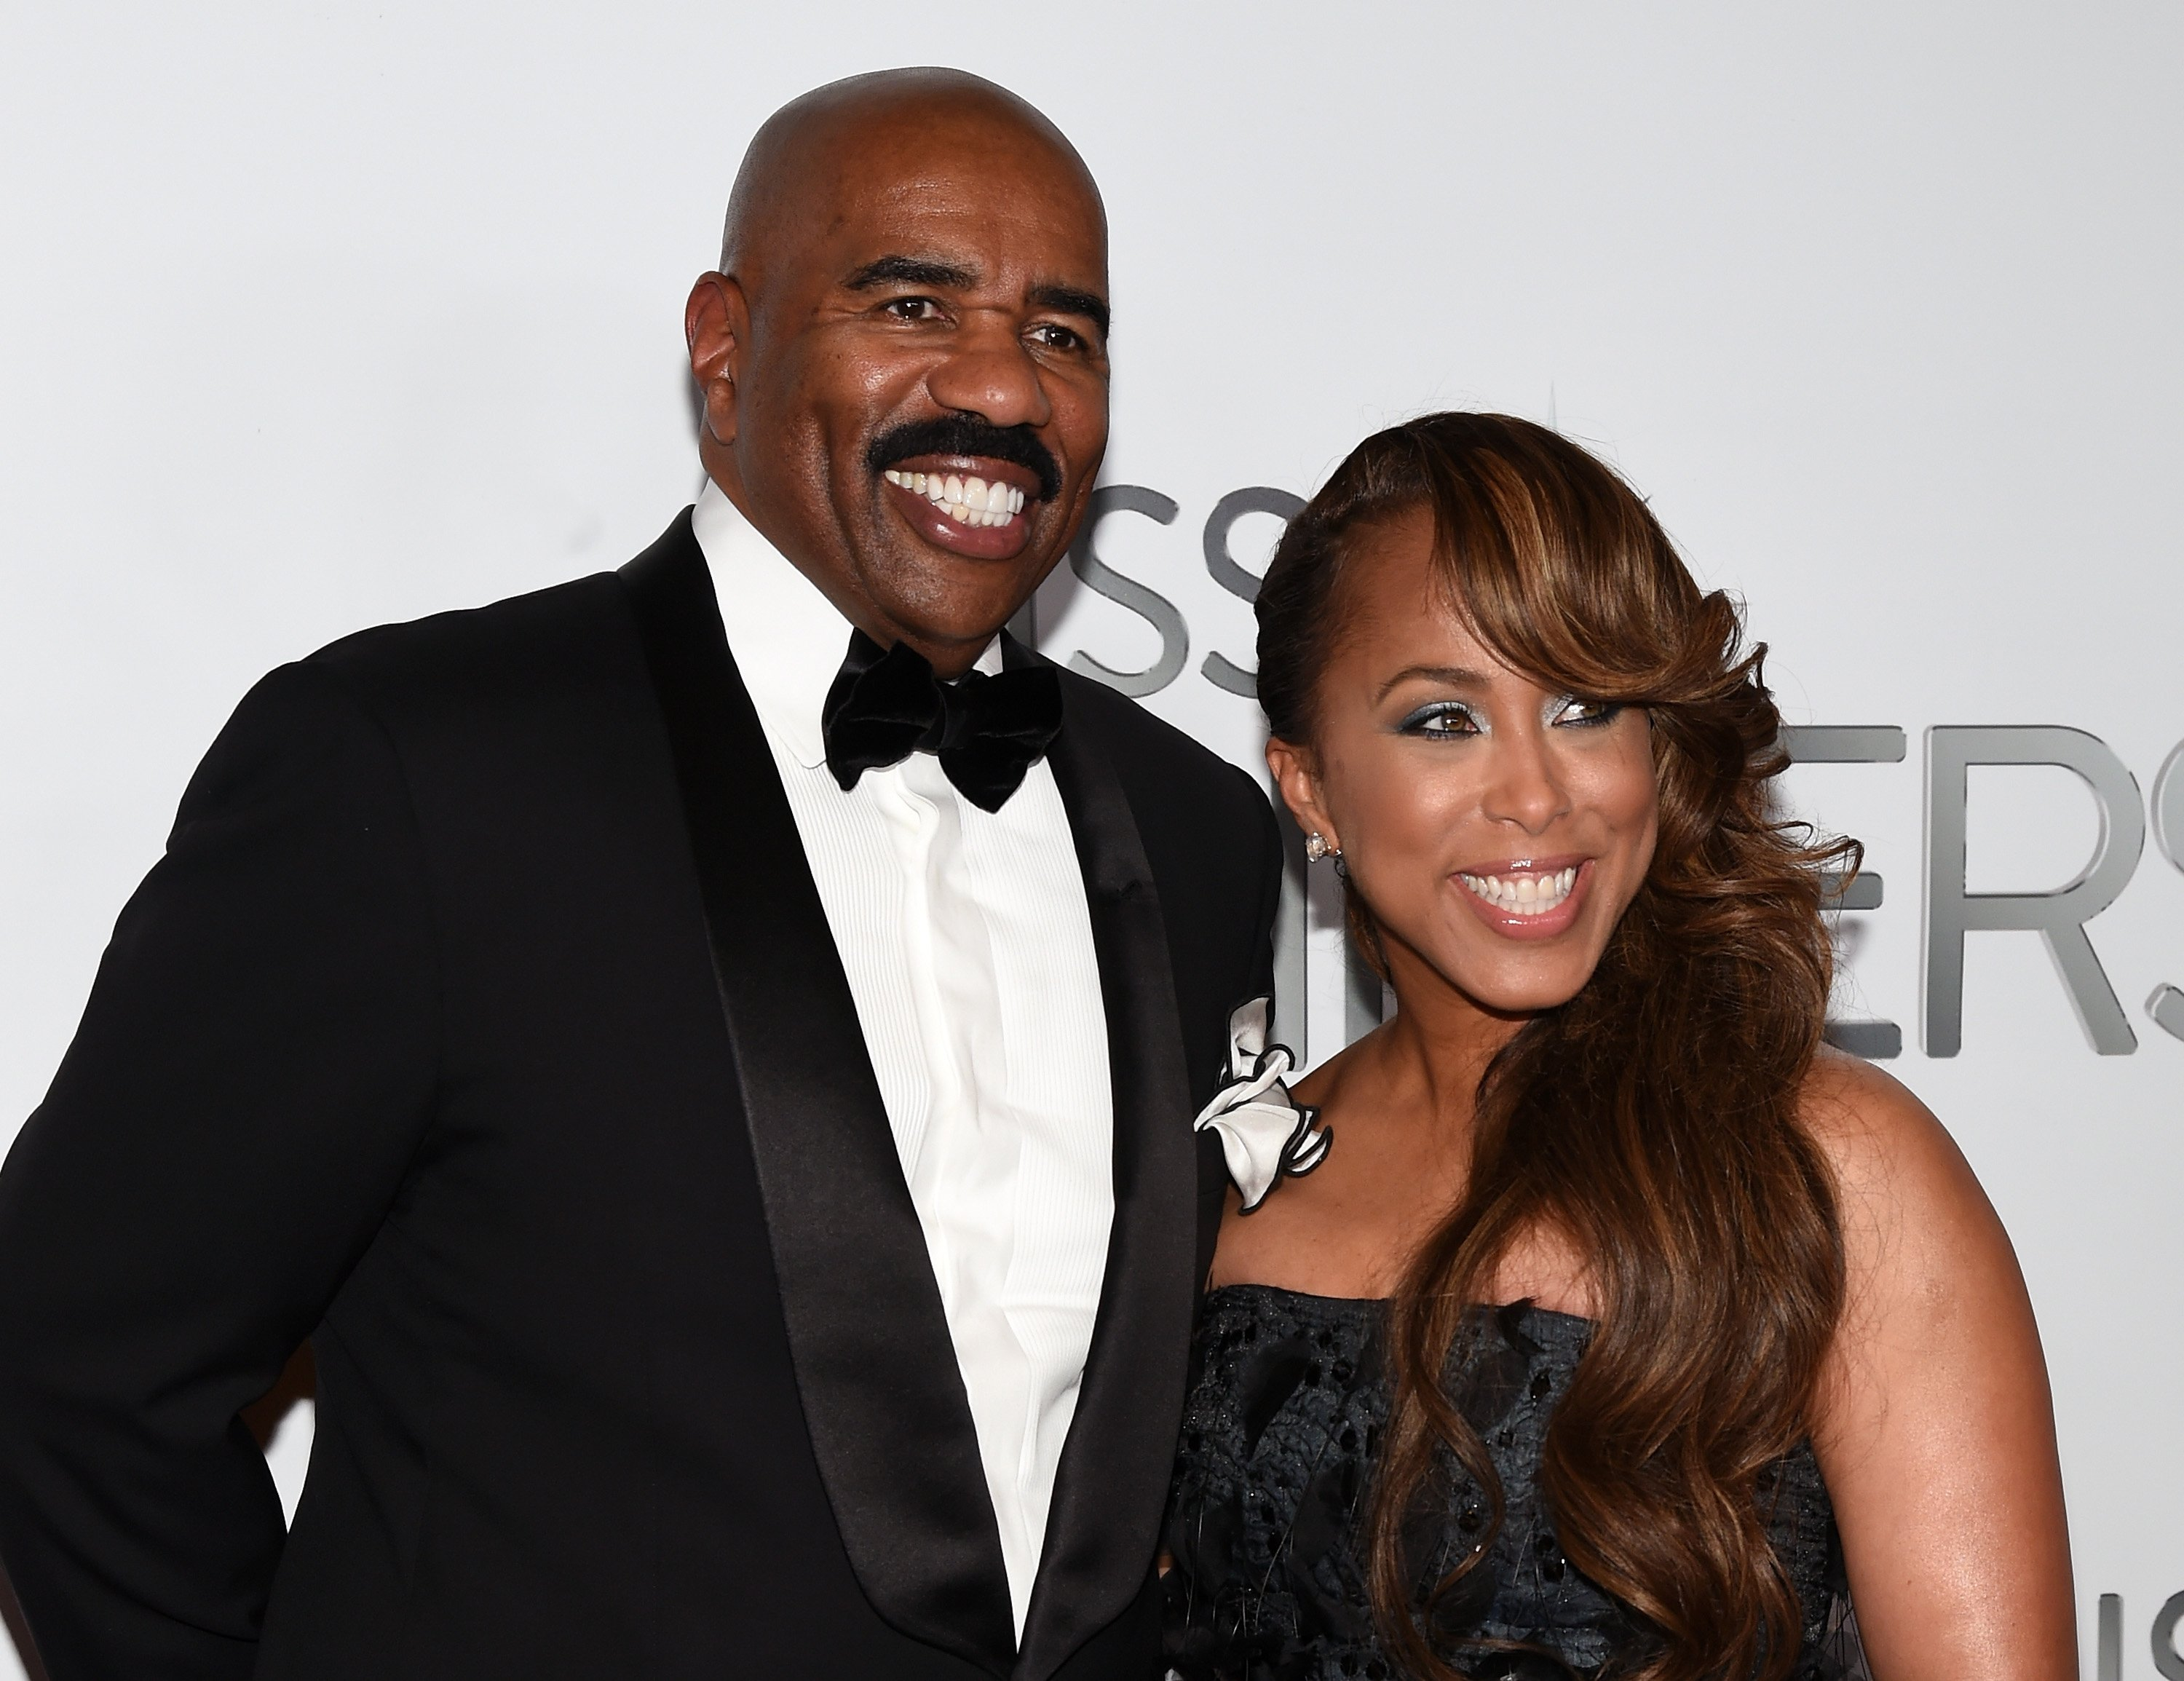 Steve and Marjorie Harvey at the 2015 Miss Universe Pageant. | Photo: Getty Images